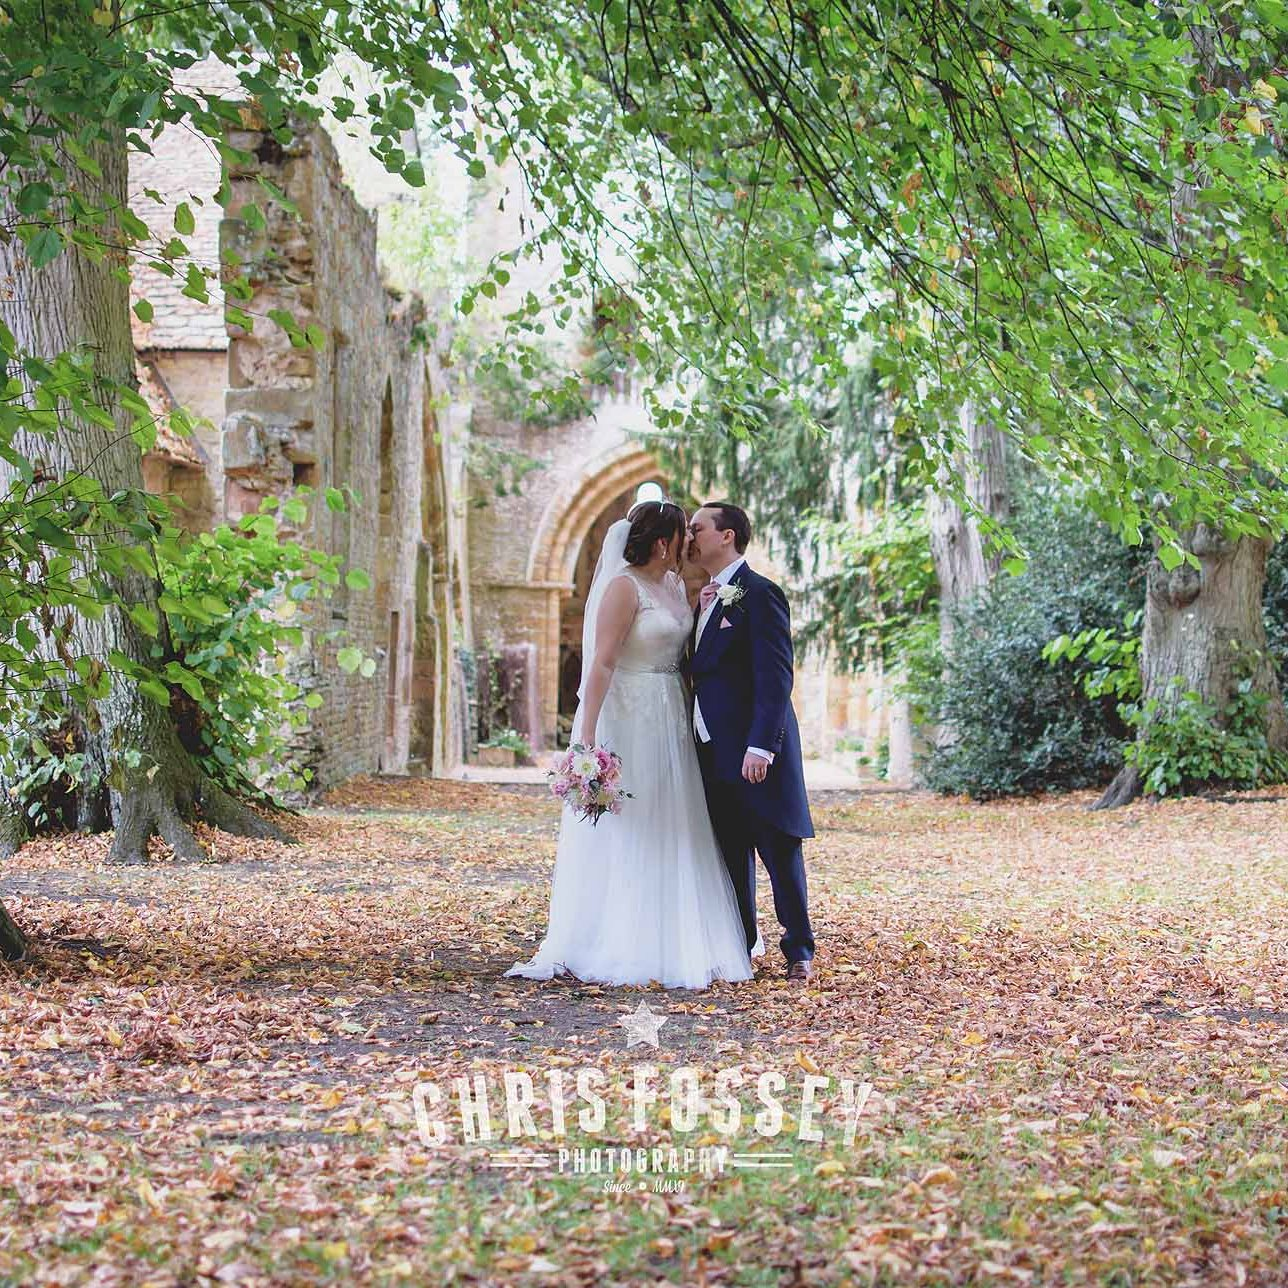 Ettington Park Wedding Photography Warwickshire Amy Ash